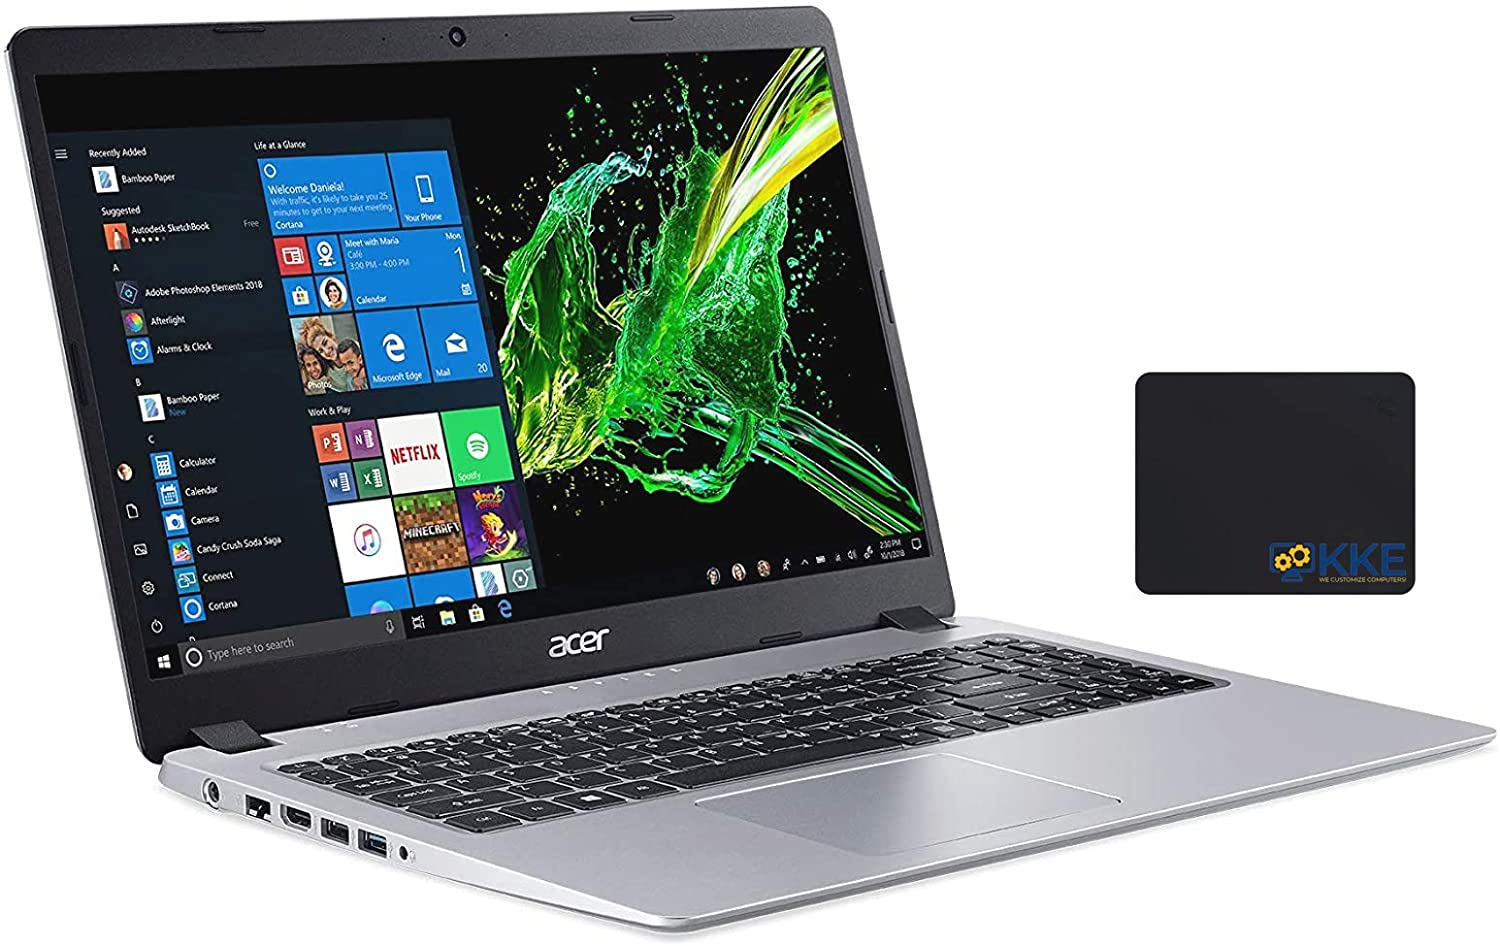 "Acer Aspire 5 - Slim High Performance Laptop, 15.6"" Full HD Screen, Newest AMD Ryzen 7 Processor, 16GB RAM, 512GB SSD+1TB HDD, Win10, Silver"